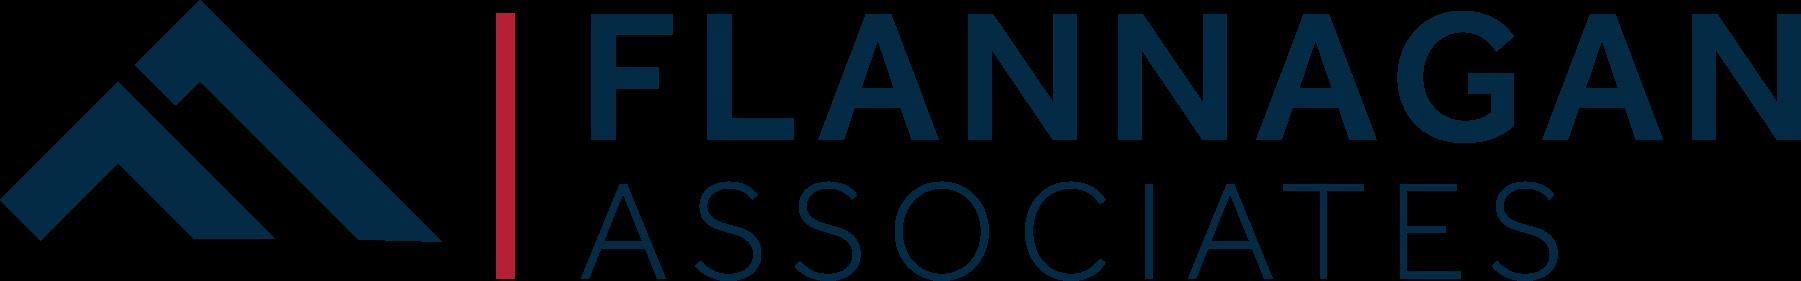 Flannagan Associates, LLC